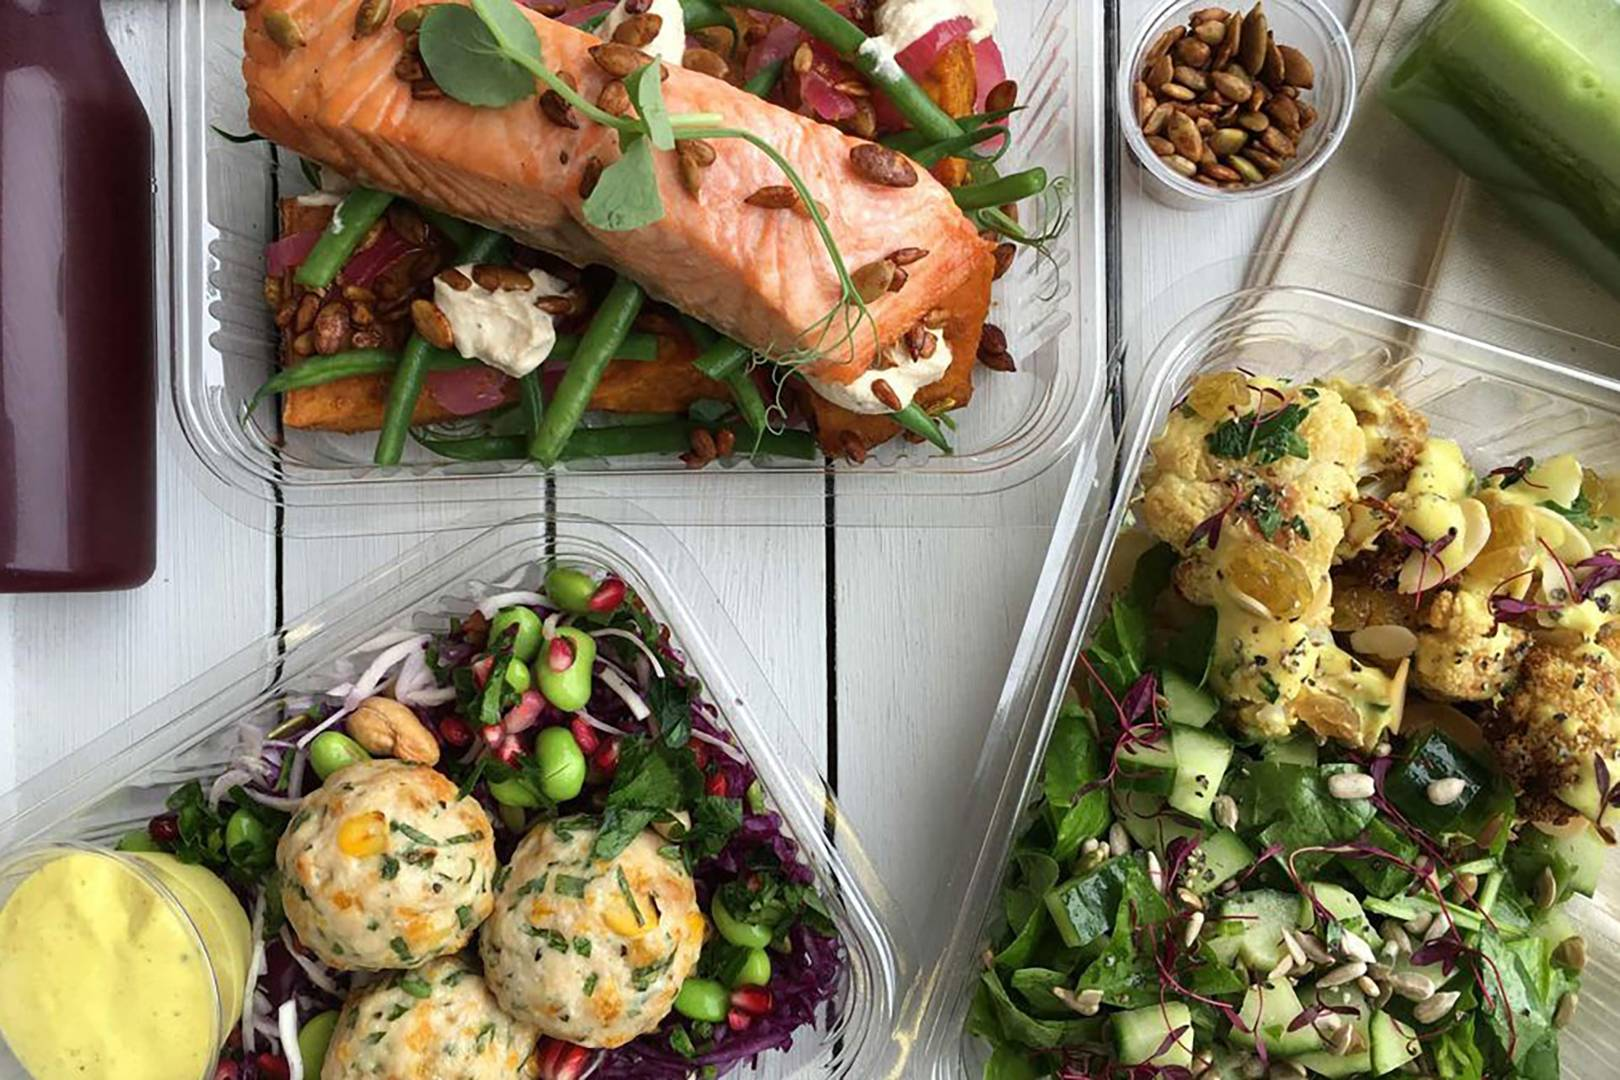 Meal Delivery Uk The Best Healthy Meal Prep Delivery Options Ranked